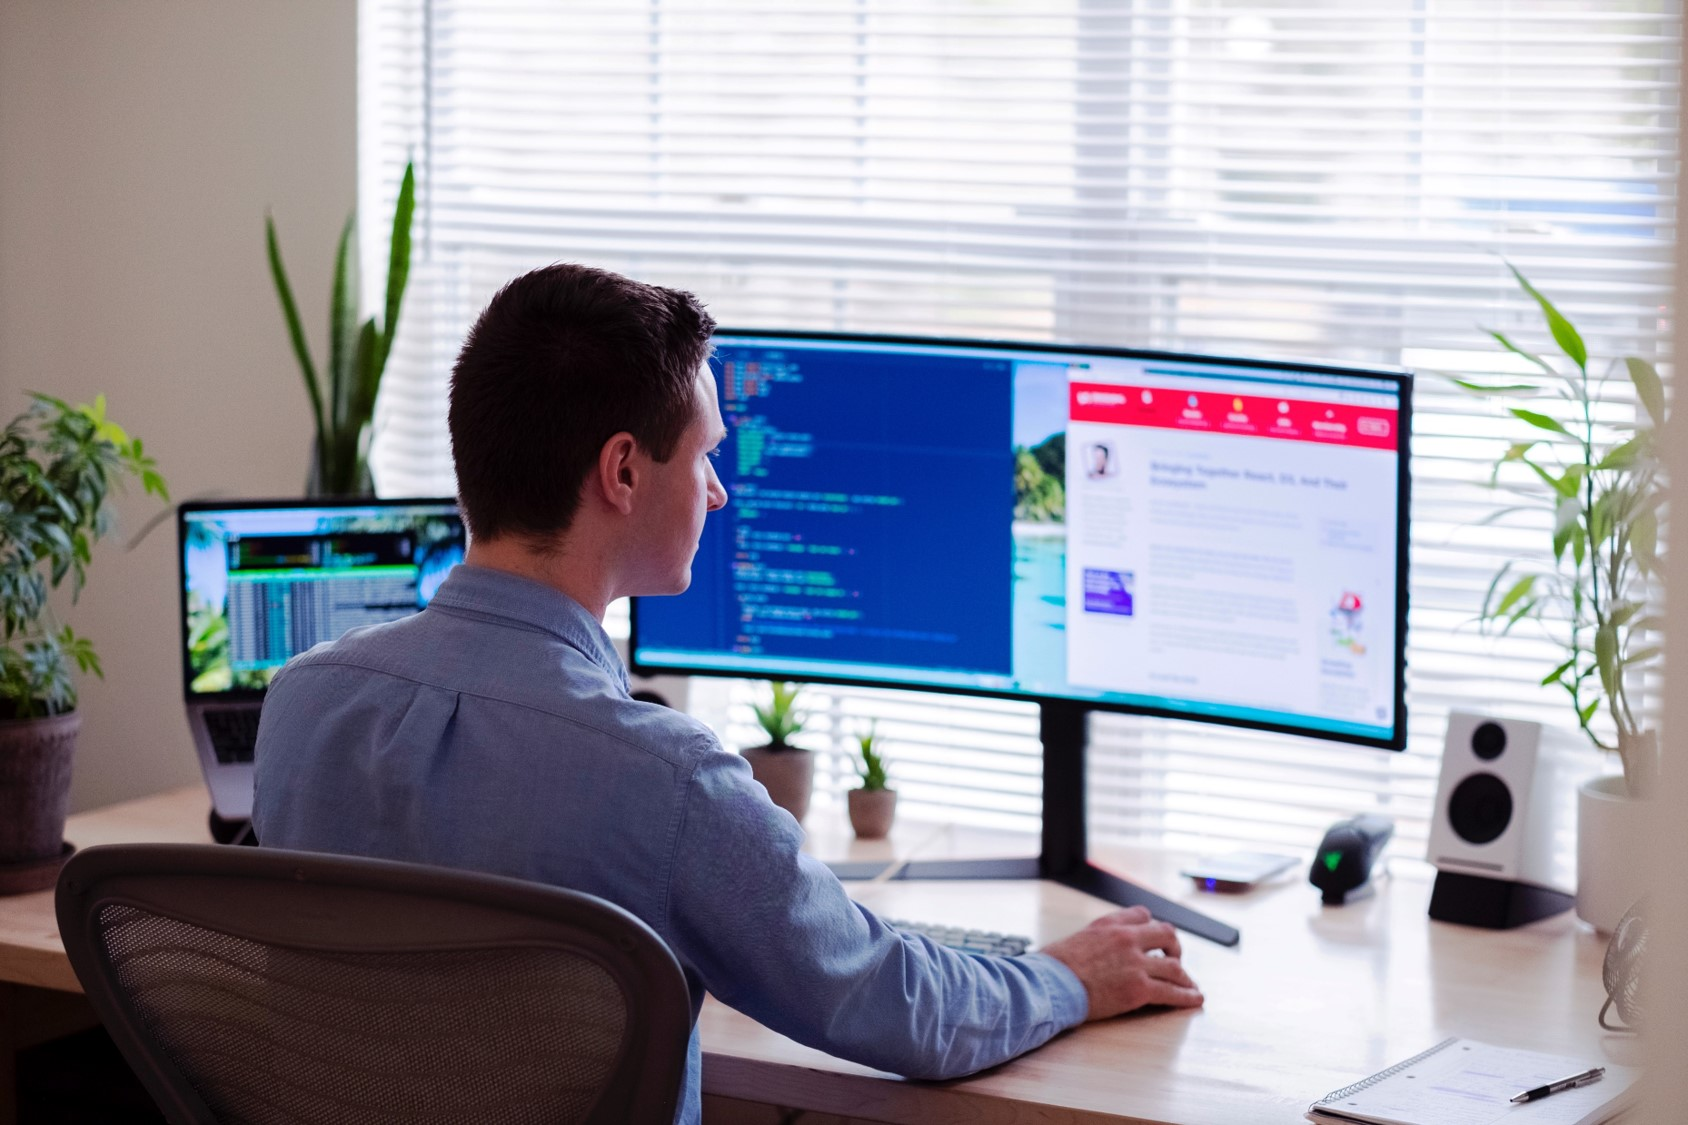 Home Office: Man at desk